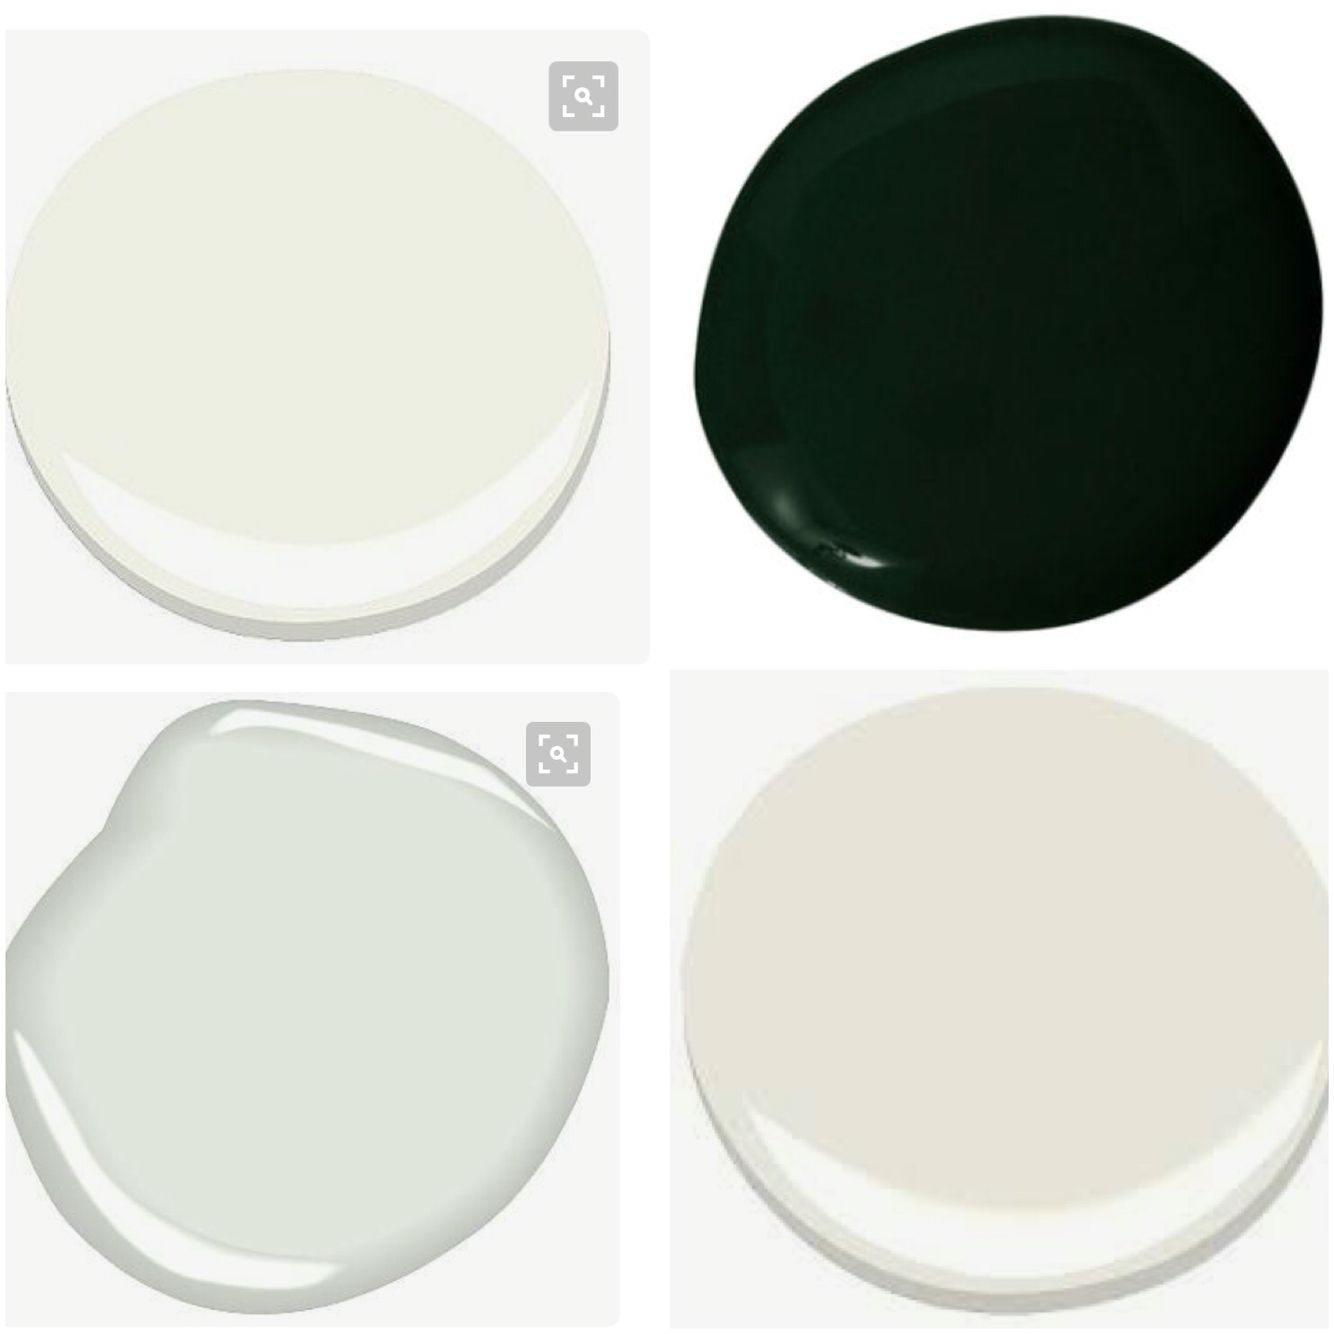 Simply white, Black Forest green, brilliant white and Swiss coffee